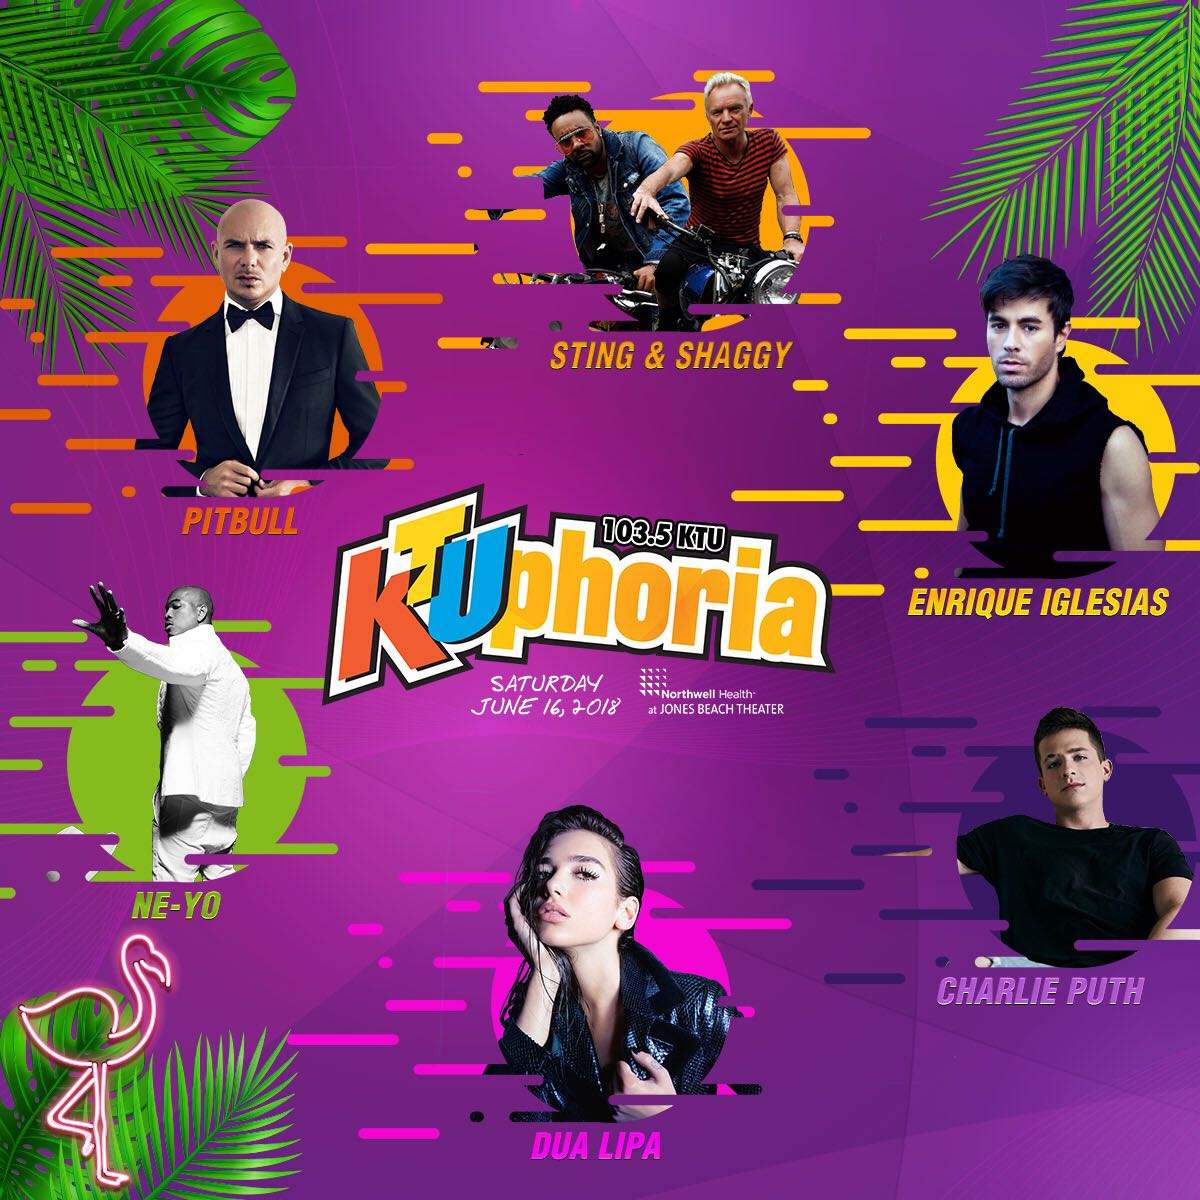 See you in June #KTUphoria. Tickets out now https://t.co/wjqtLuaxbf https://t.co/wQbxkhGk4s